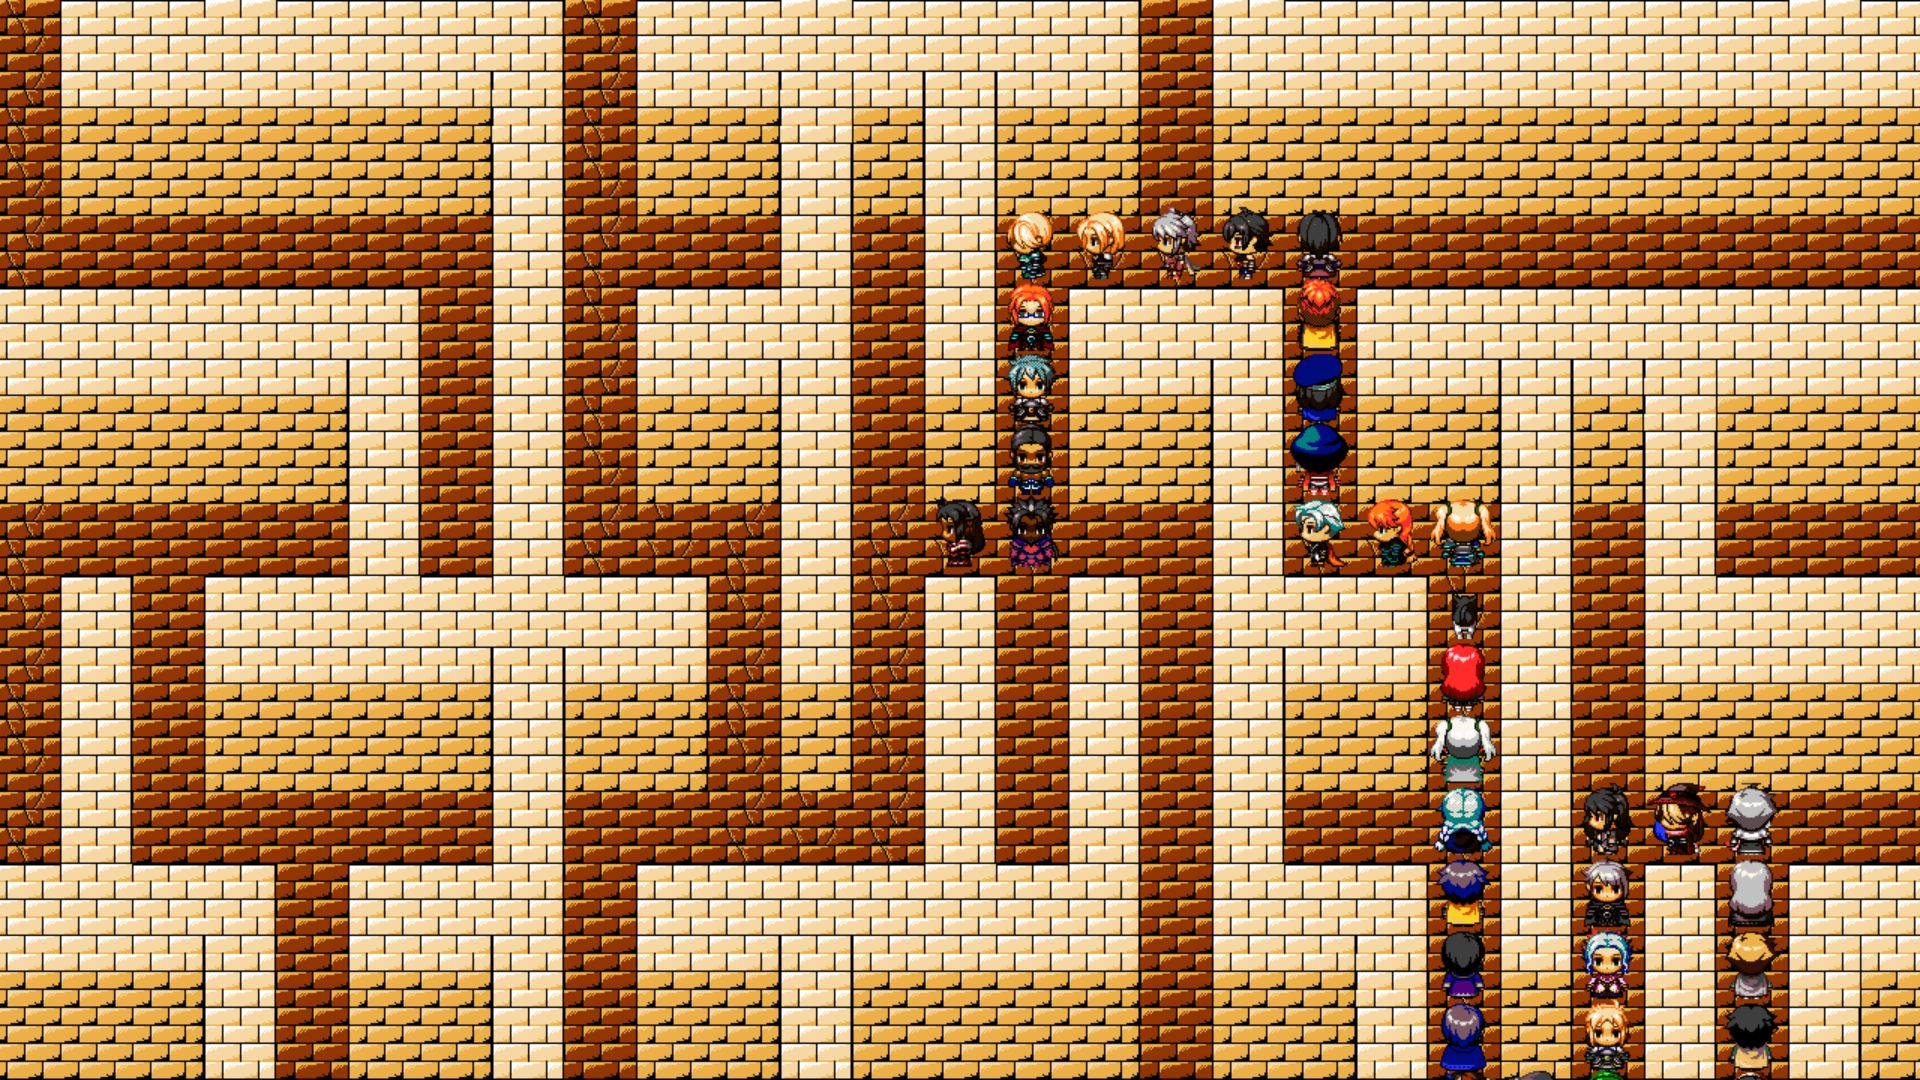 A huge adventuring party traverses a maze in single file